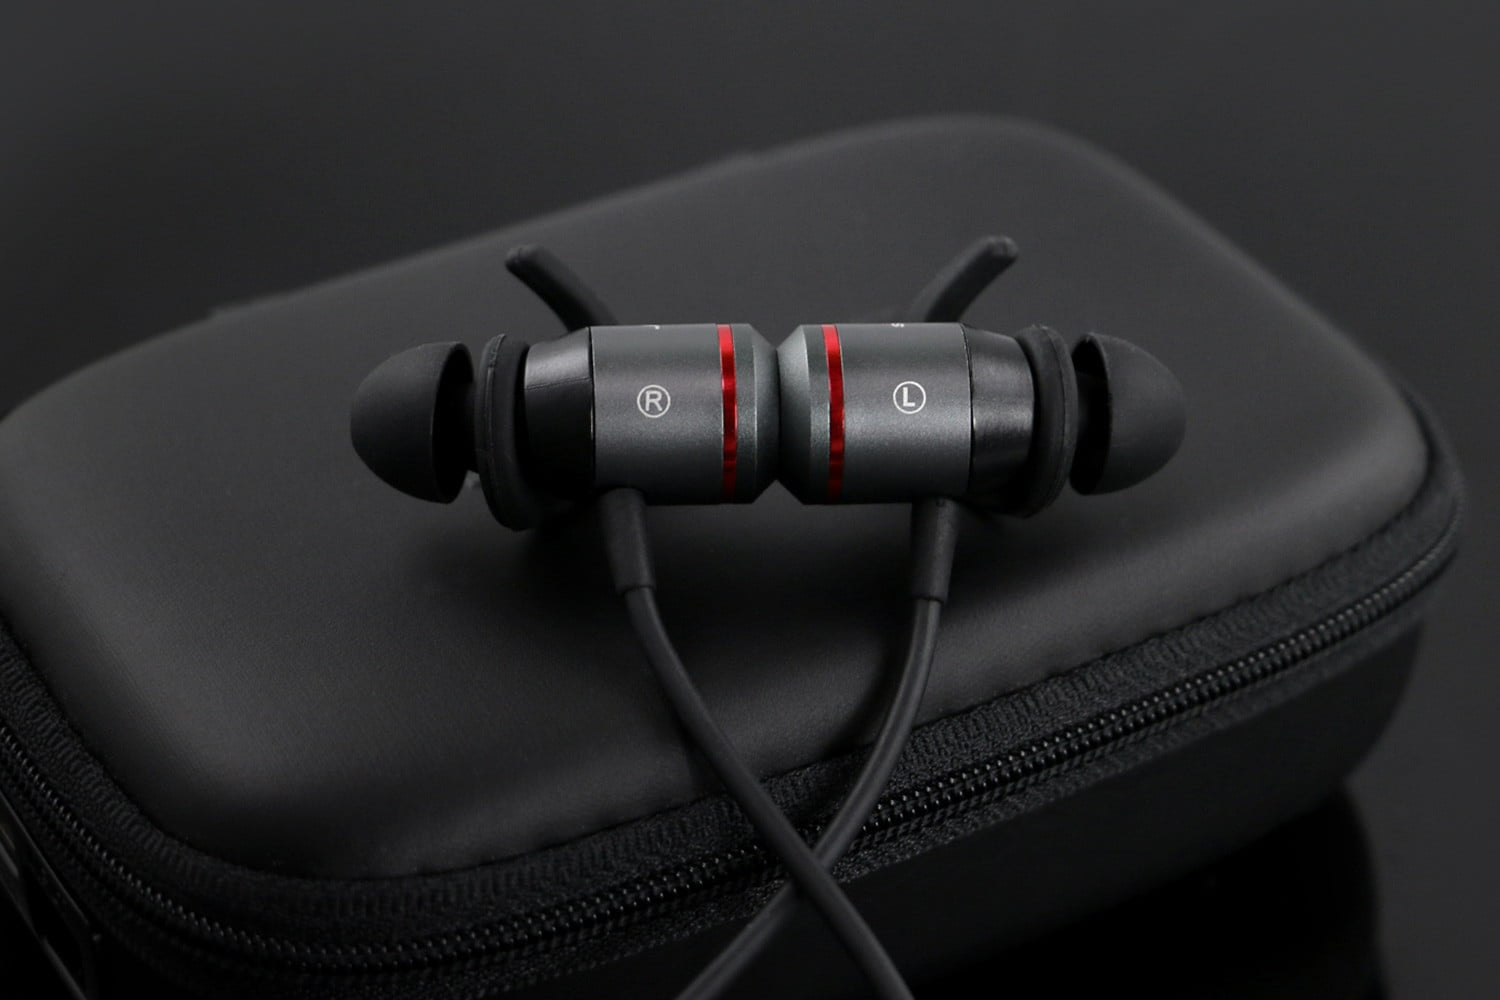 jabees-ampsound-bluetooth-hearing-amplifiers_007-1500x1000.jpg?ver=1